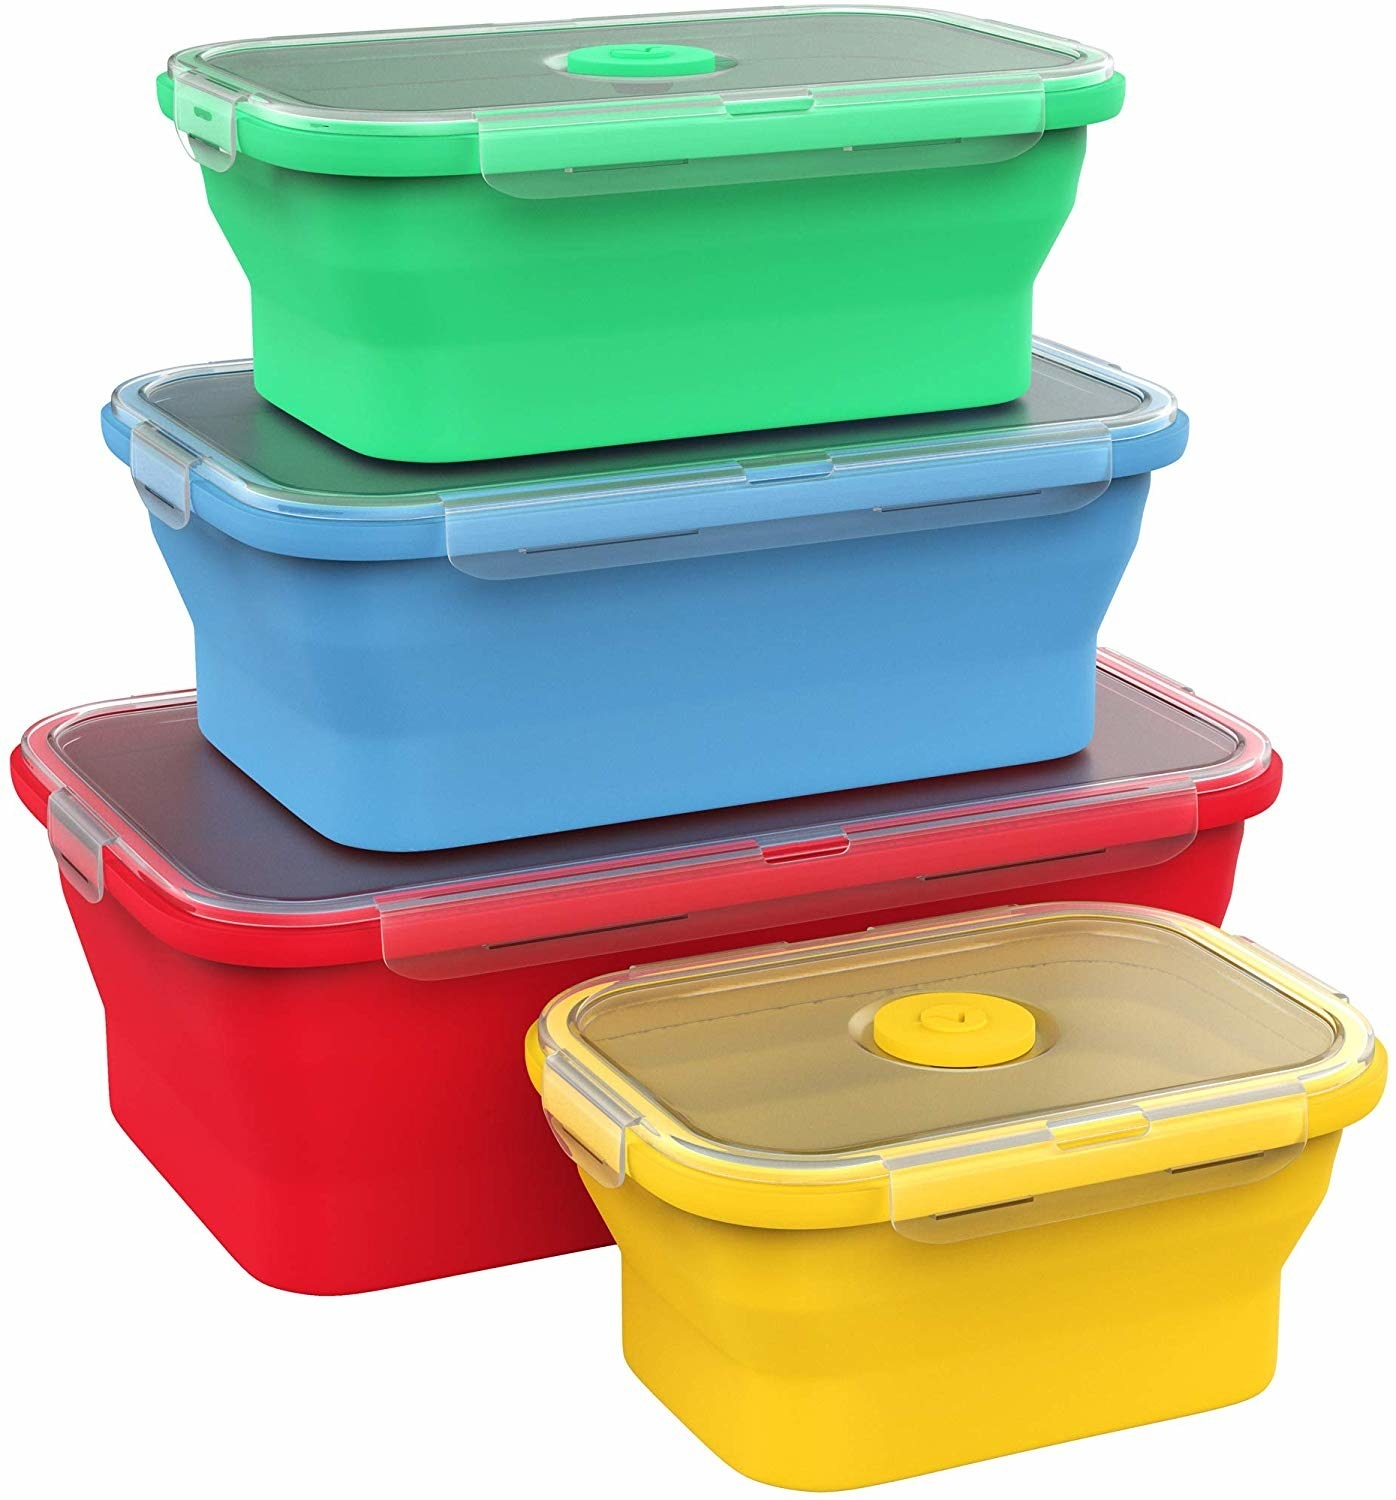 stack of four containers that decrease in size; largest is red, second-largest yellow, second-smallest green, and smallest red